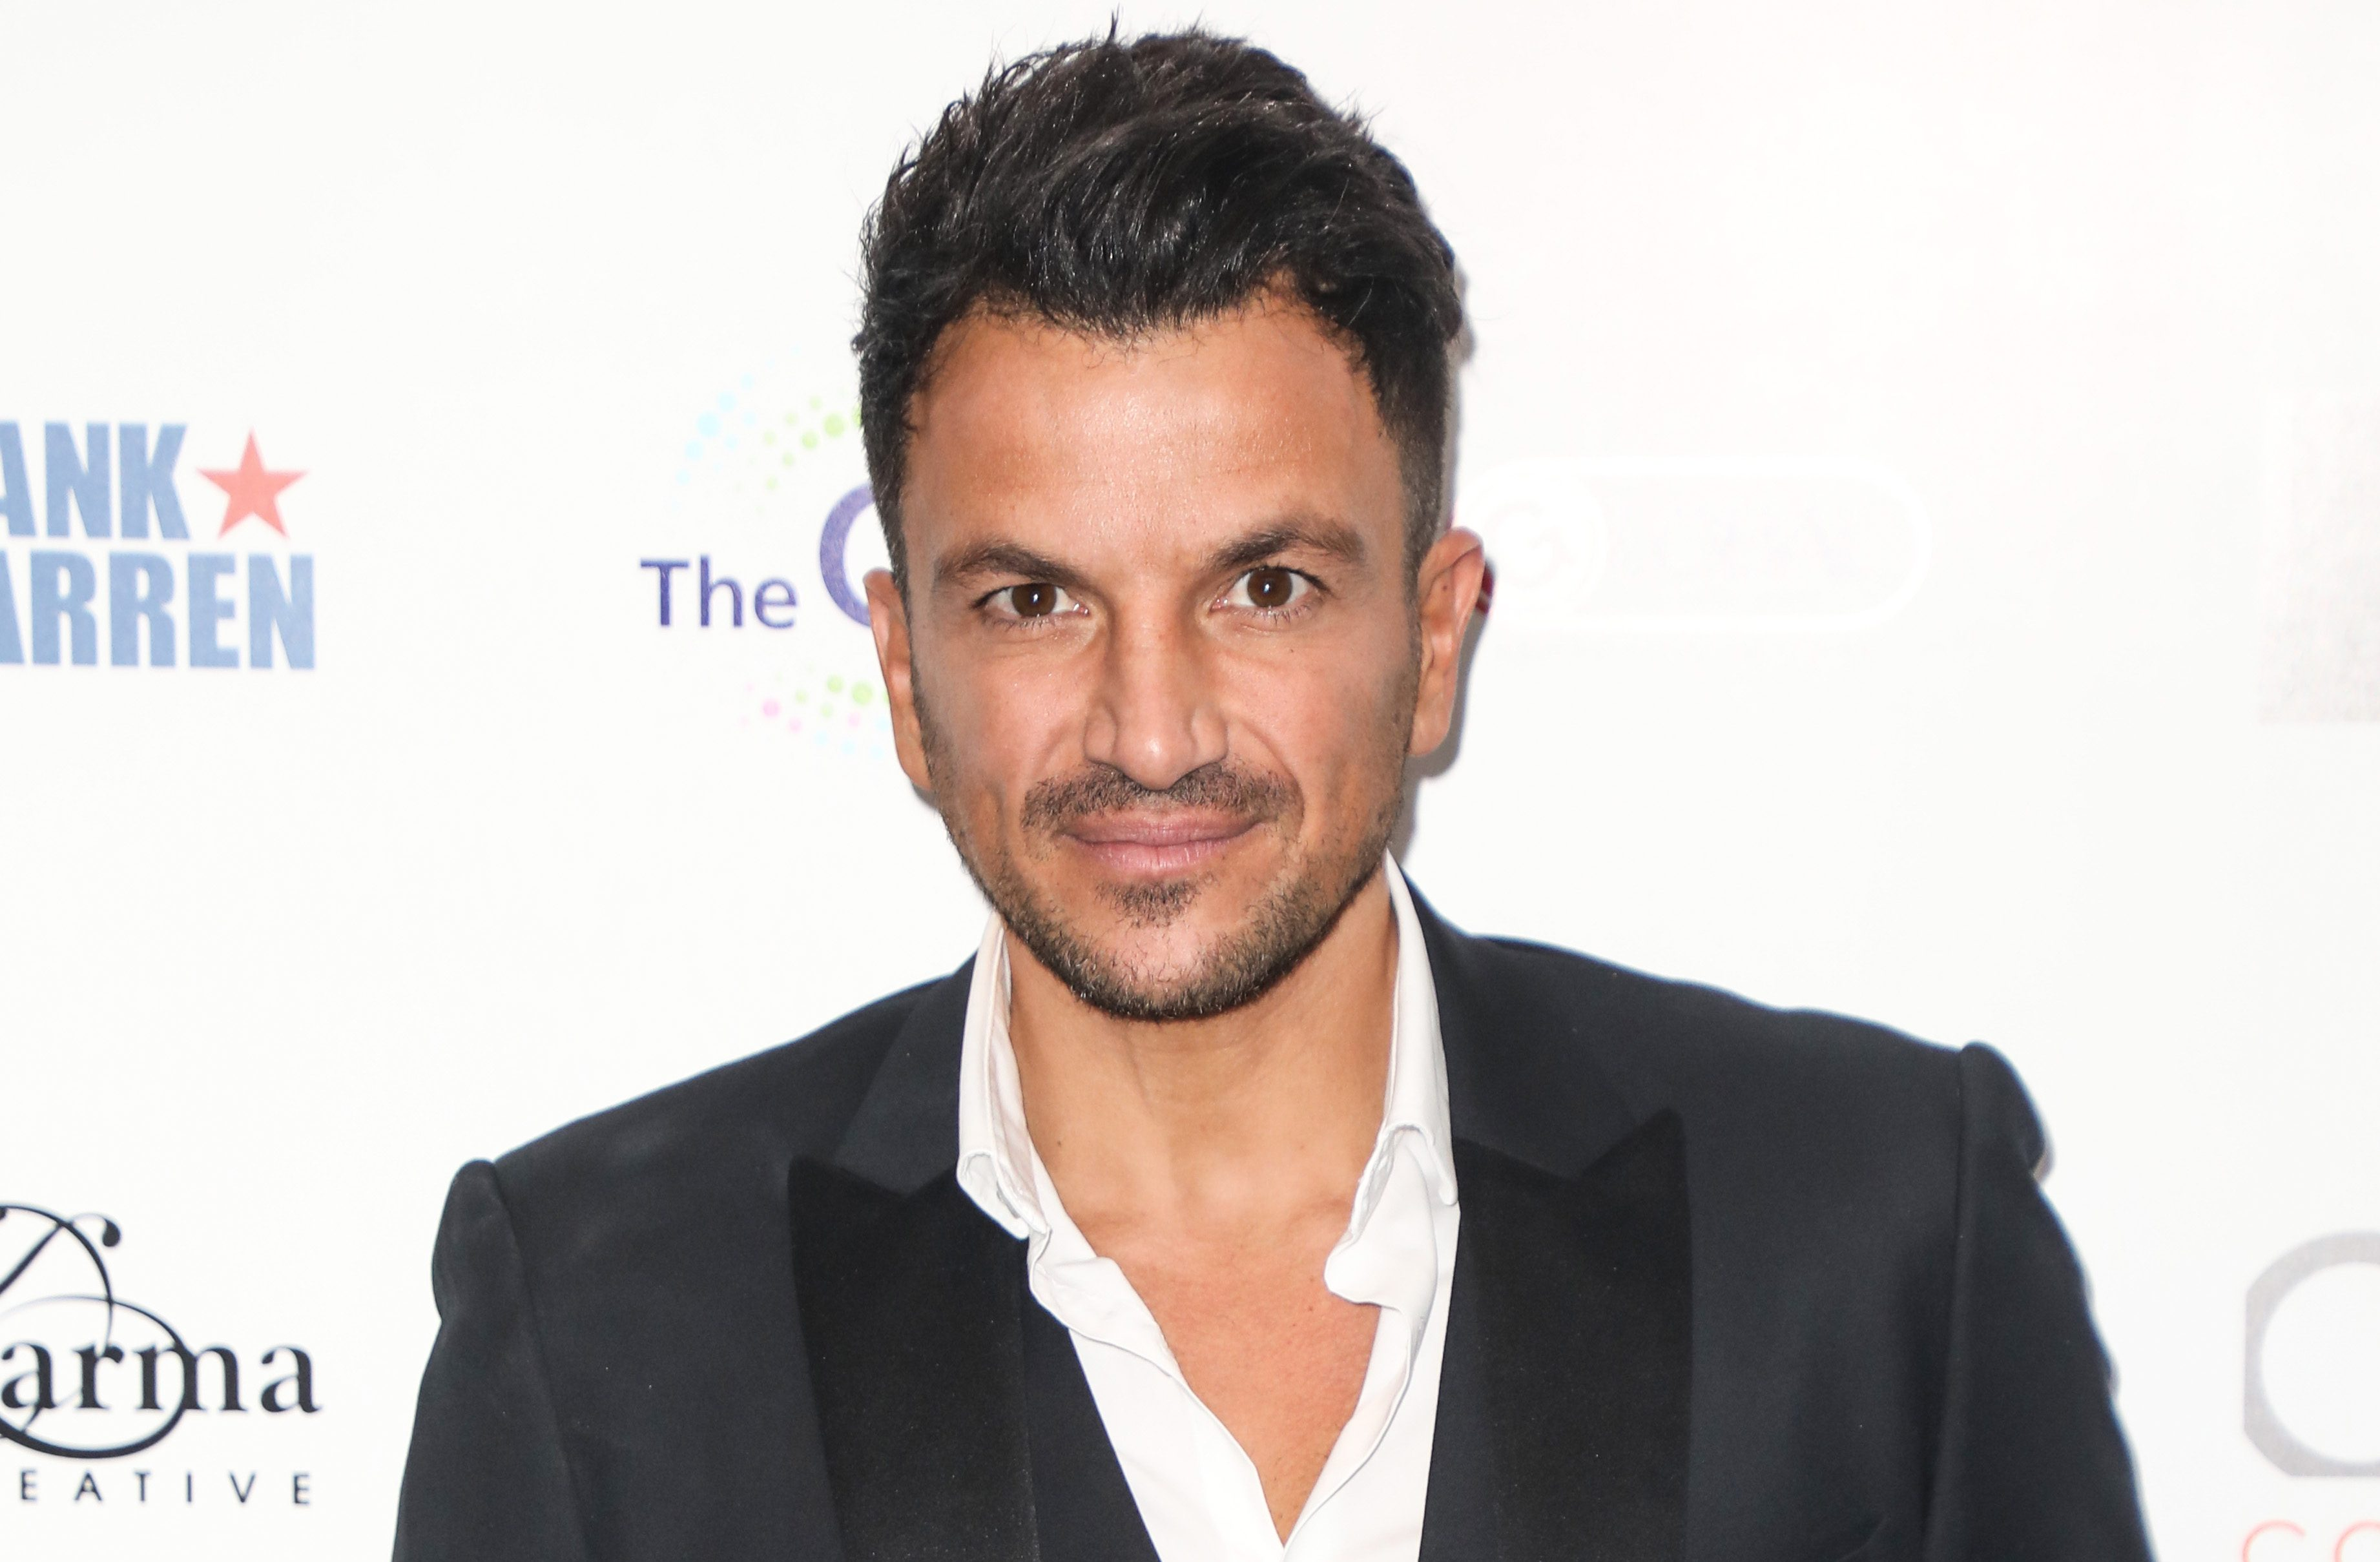 Peter Andre shows off  'fake poo' in front of his family at Christmas